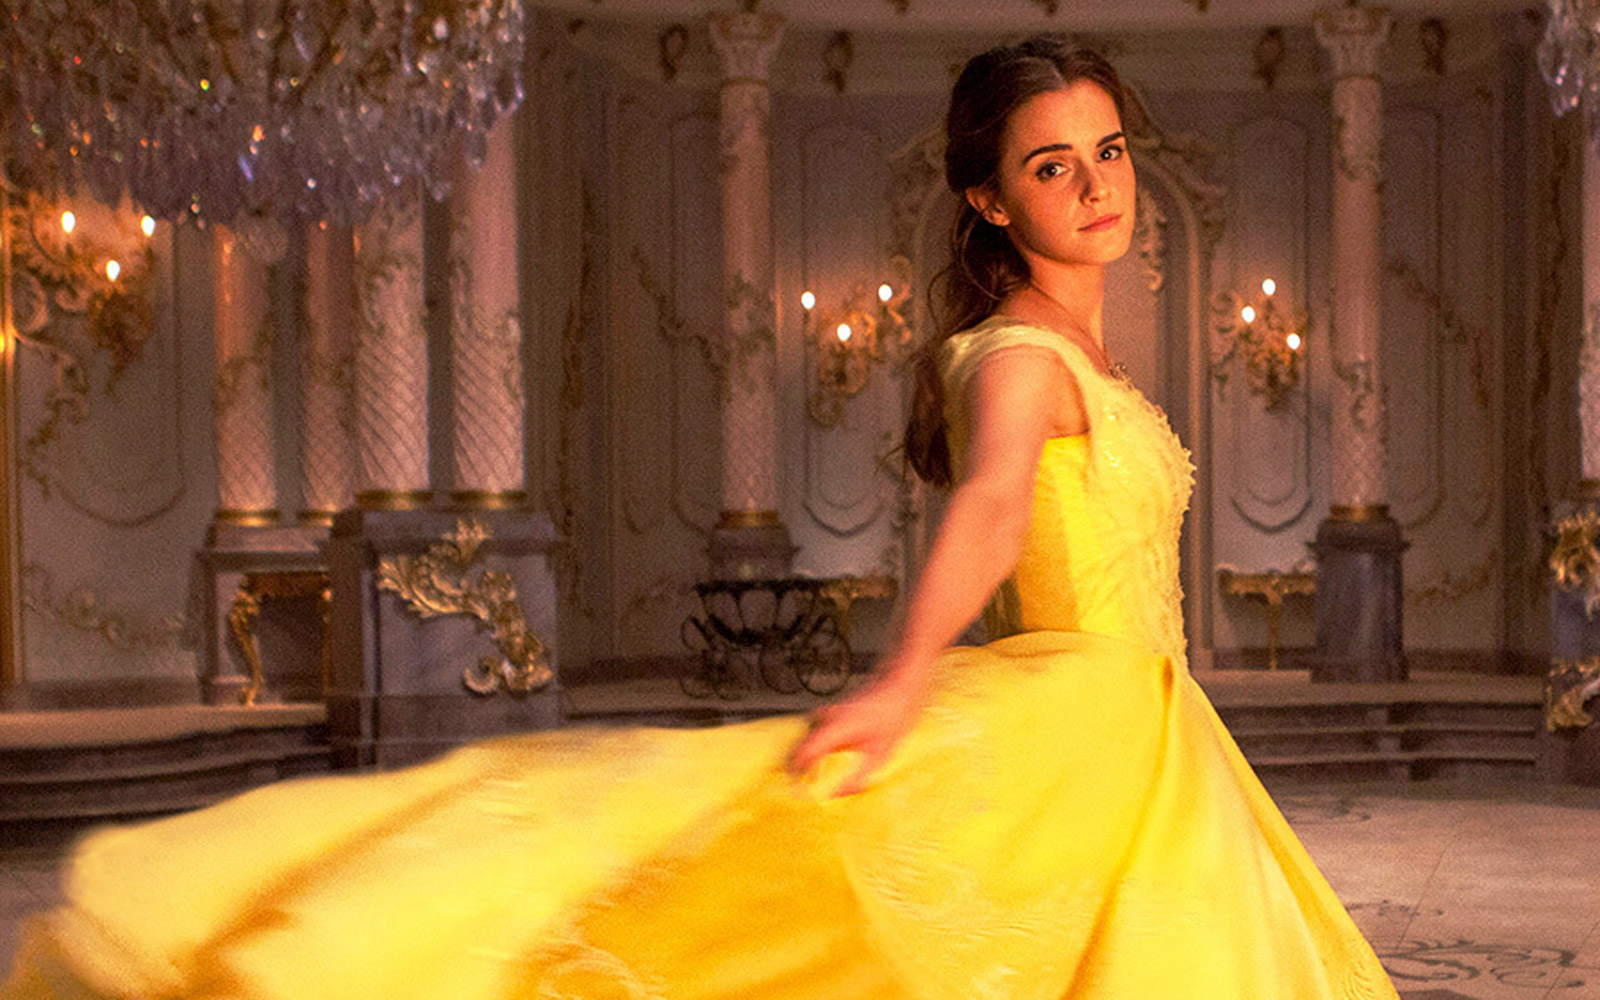 3. Belle From Beauty and the Beast